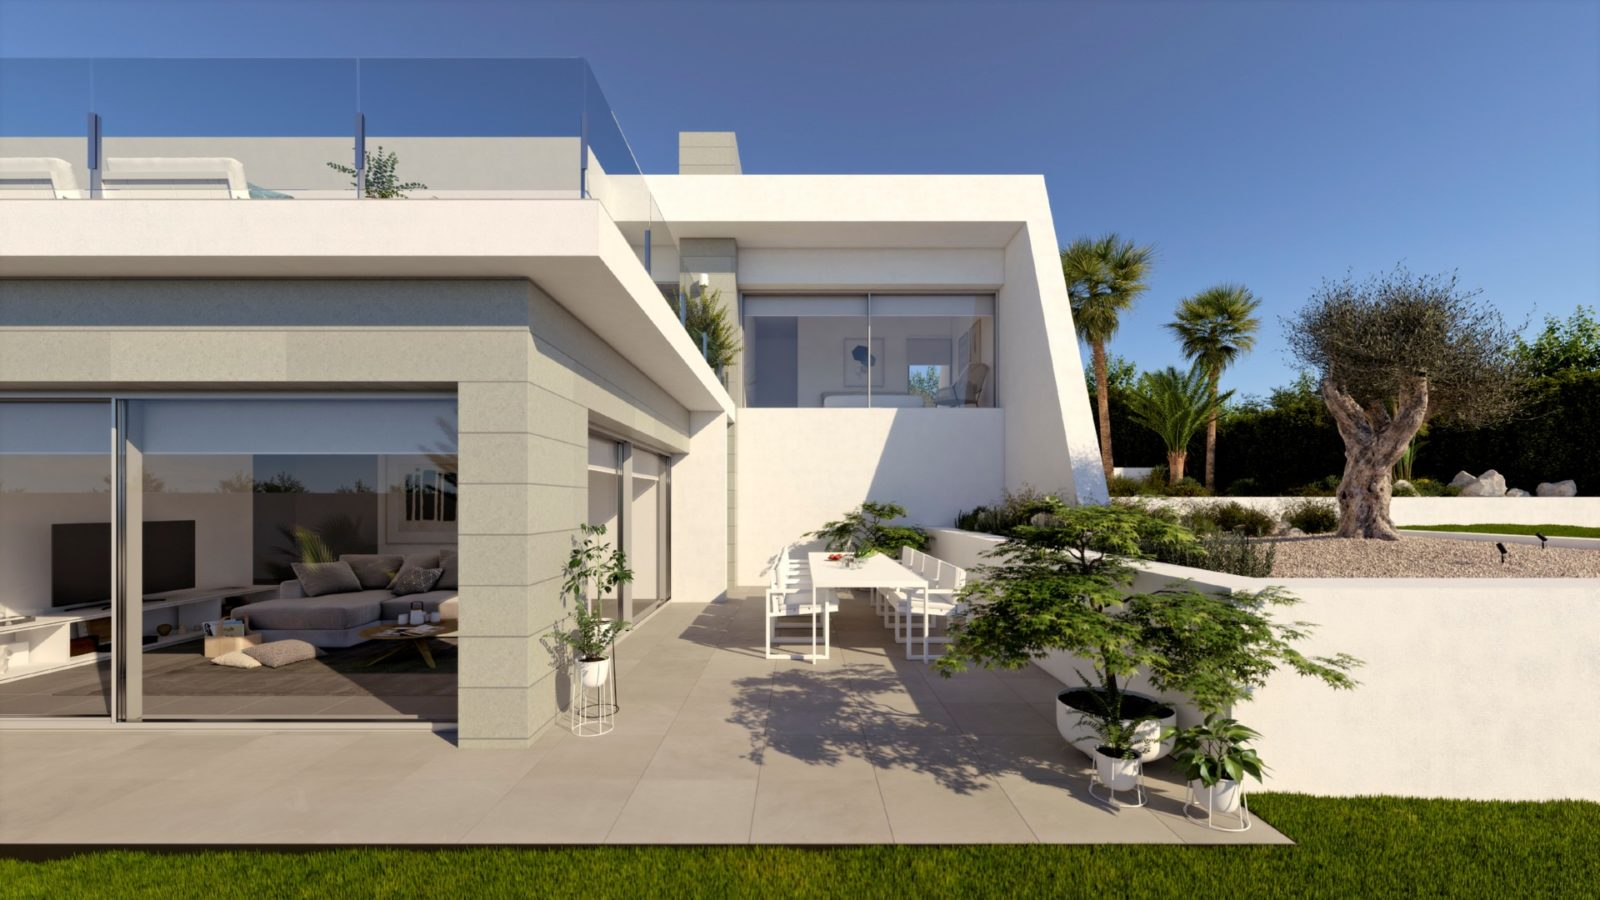 Luxury Personalized Modern Villas on Exclusive Plots in Cumbre Del Sol, Moraira